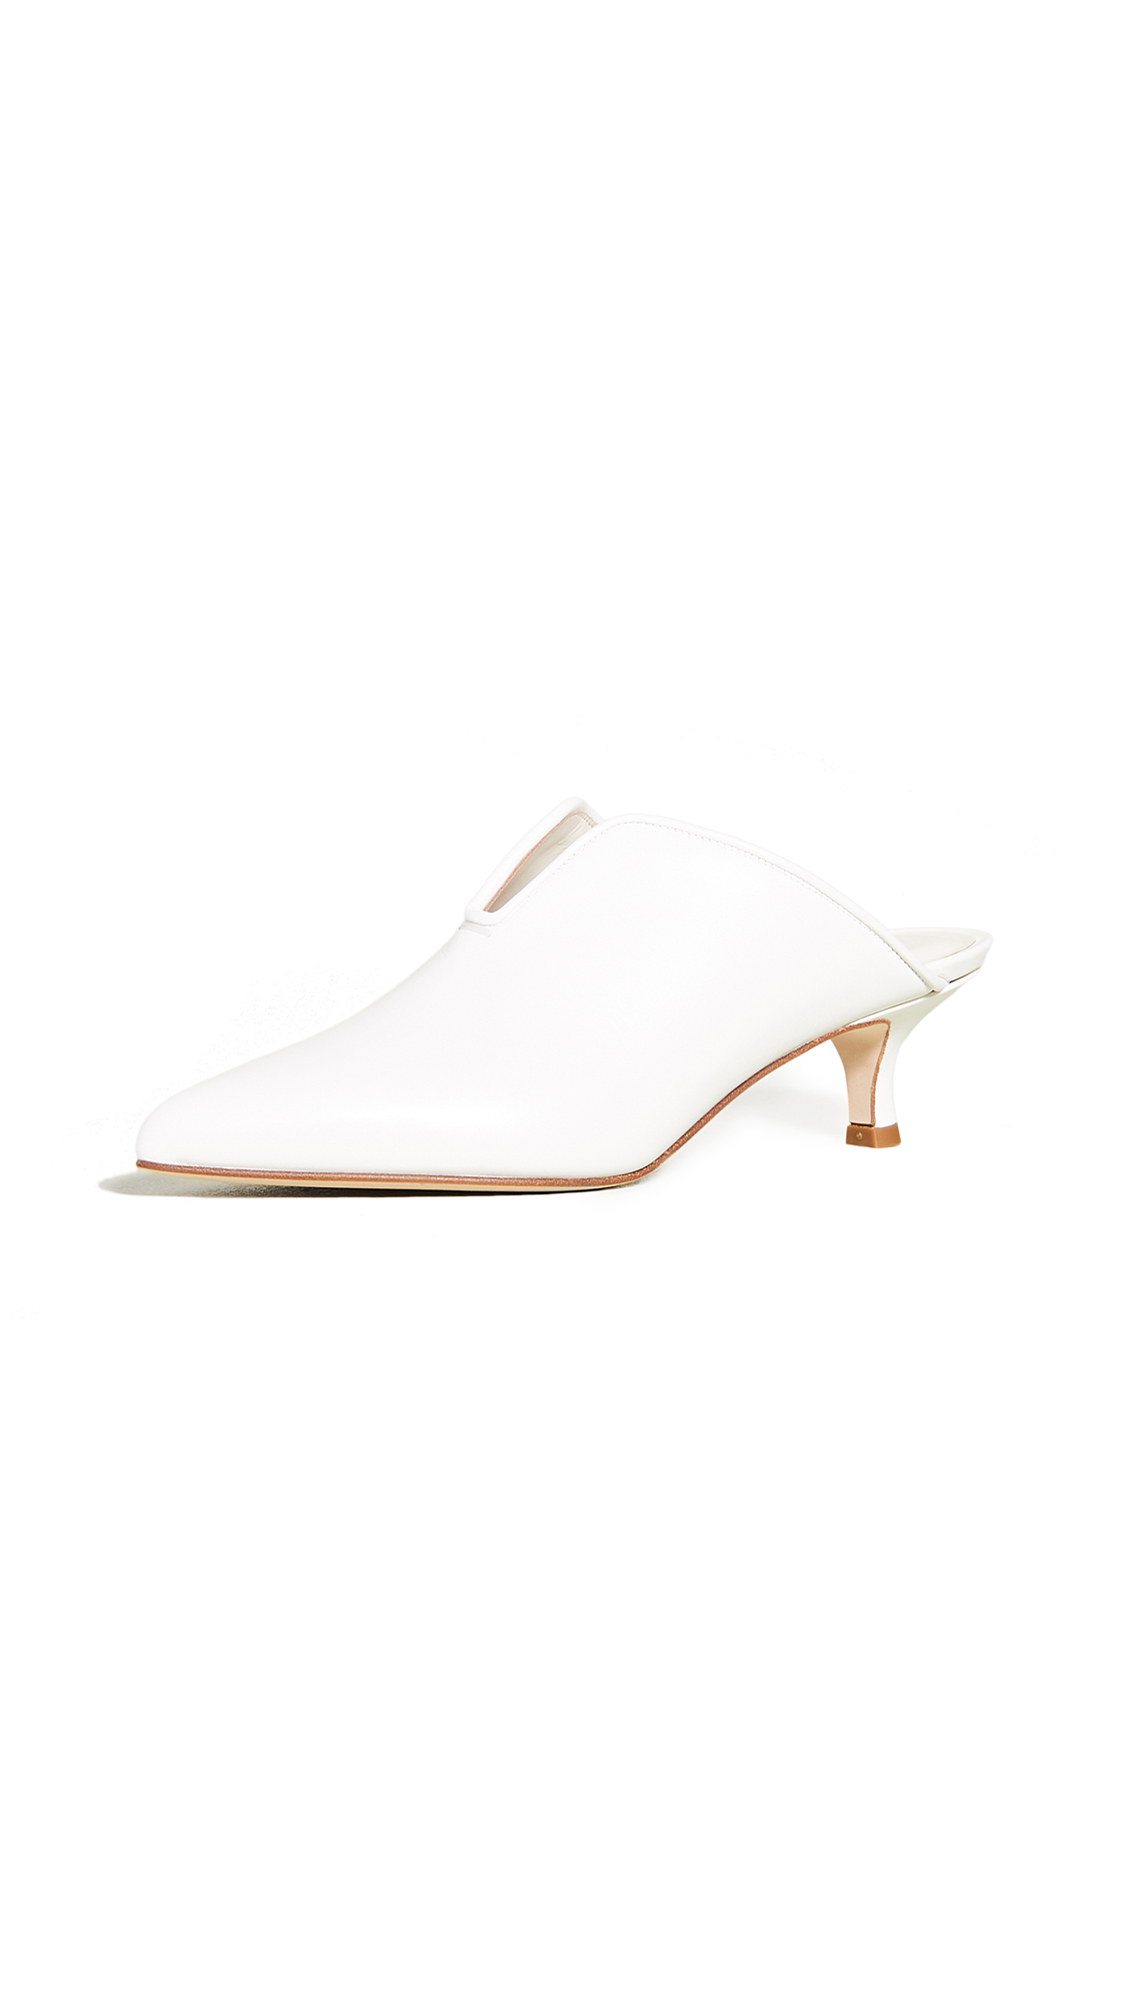 Tibi Dana Mule Pumps - 30% Off Sale